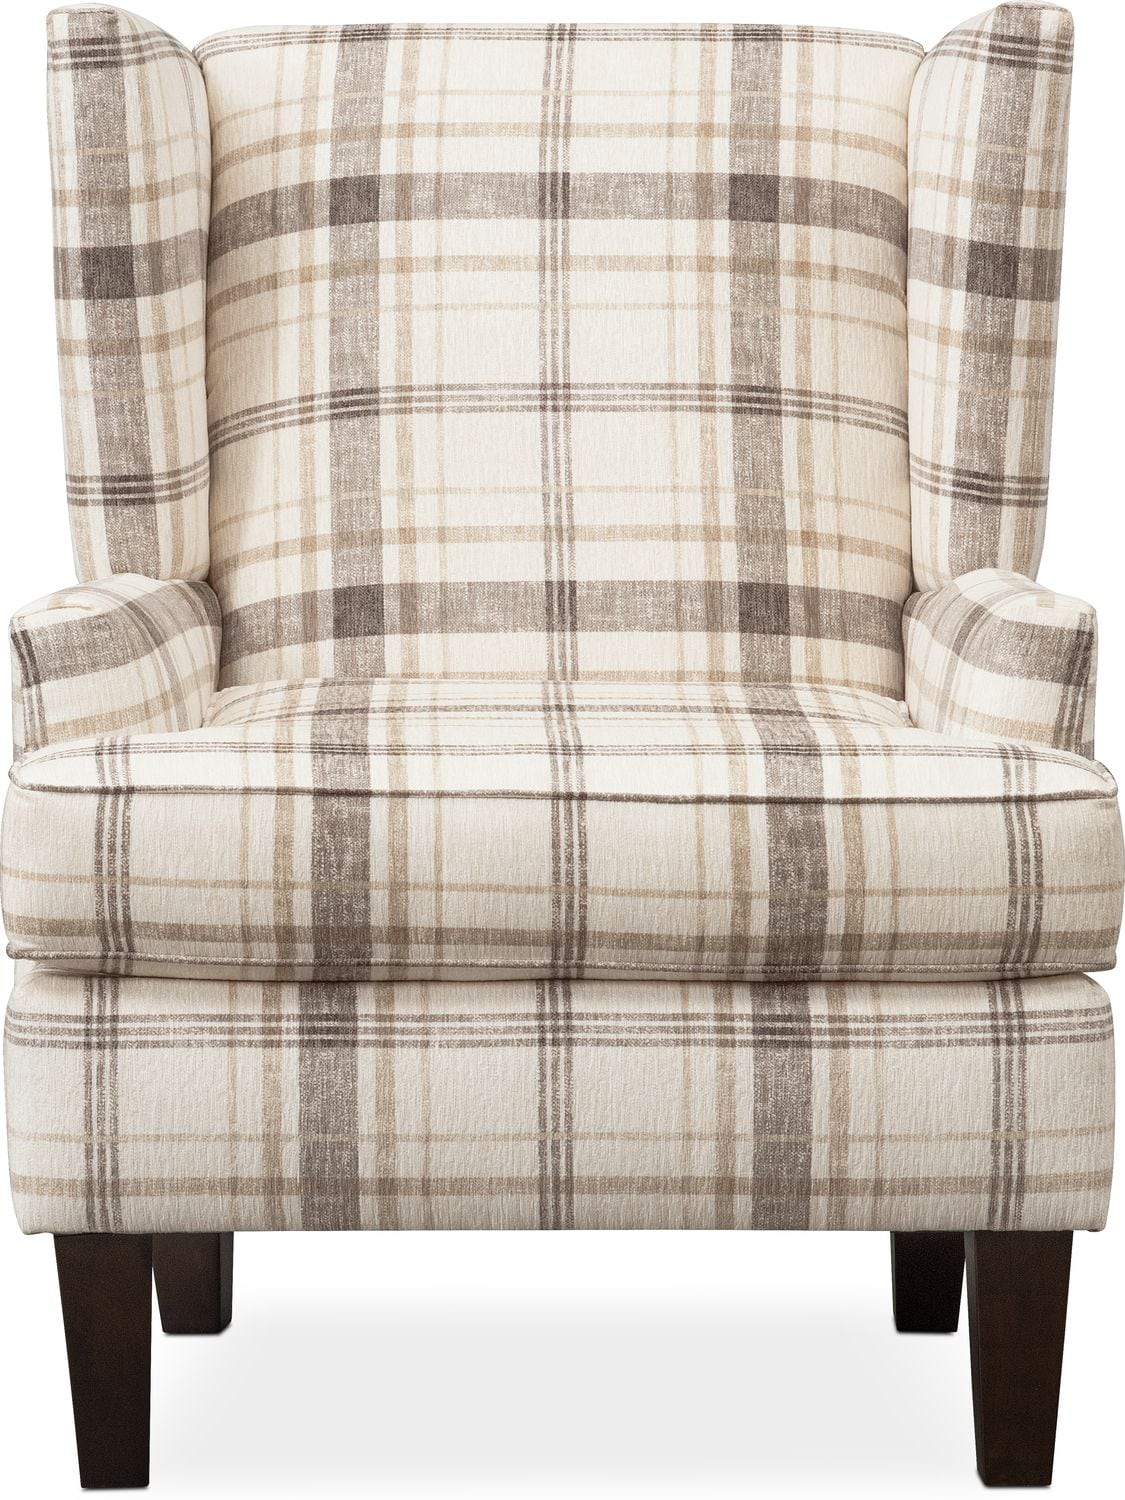 Rowan Accent Chair Plaid American Signature Furniture